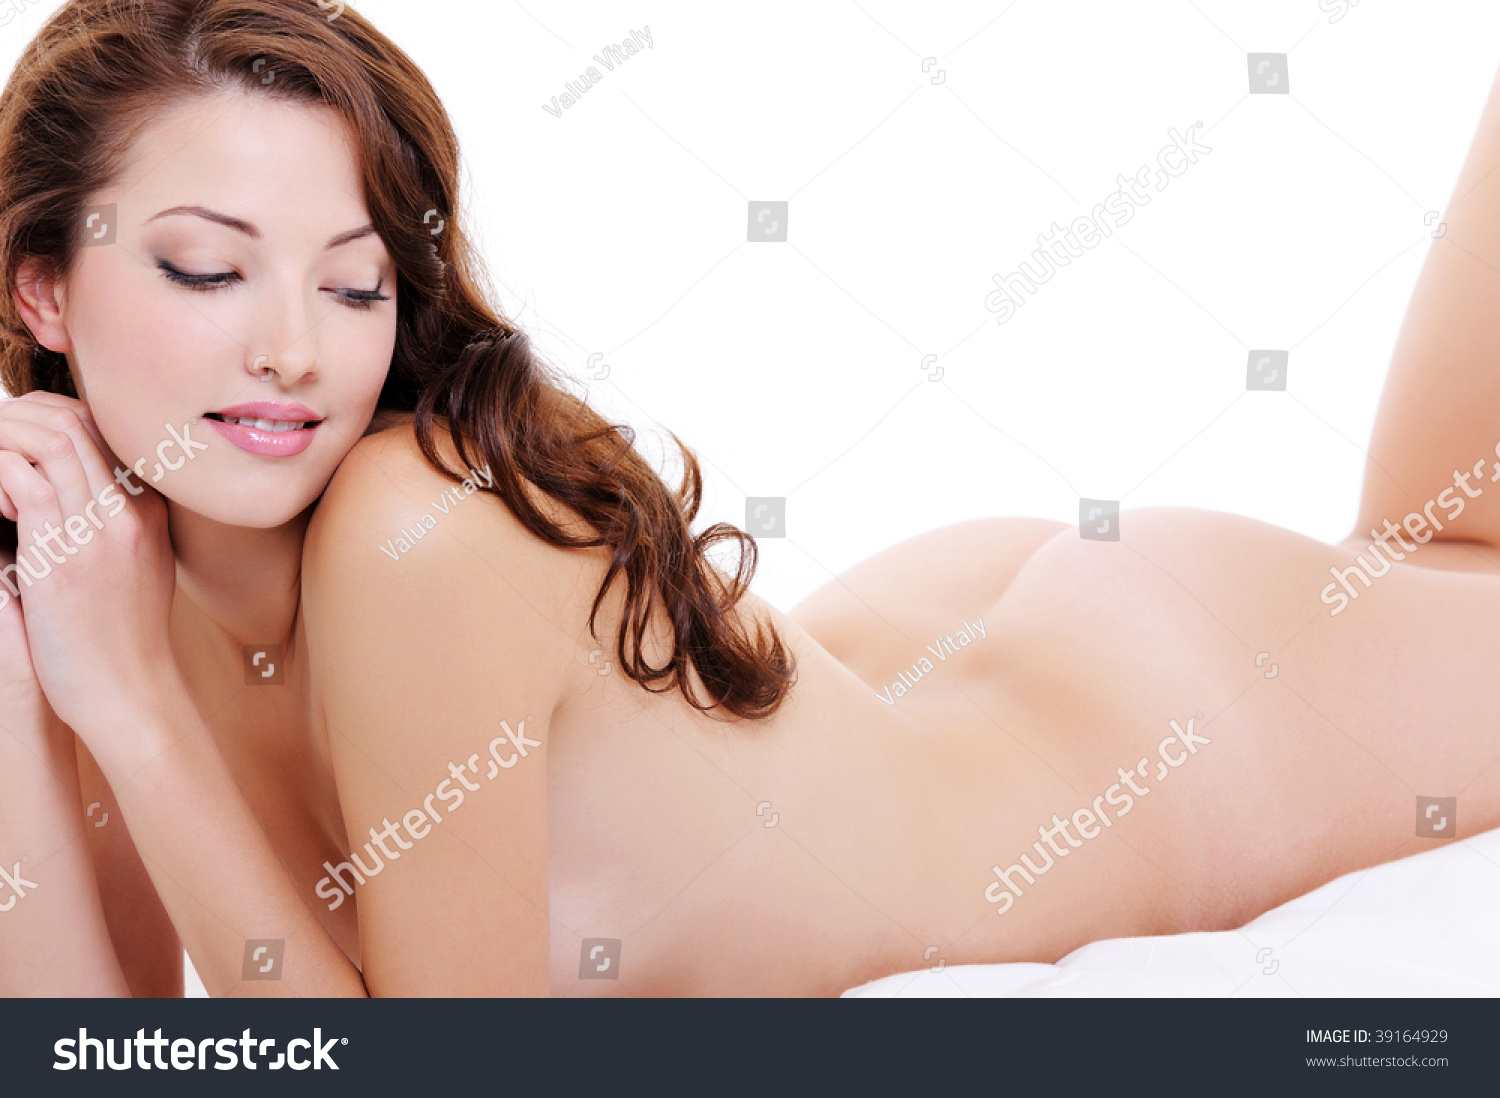 sexy young adult nude female flirting stock photo (royalty free